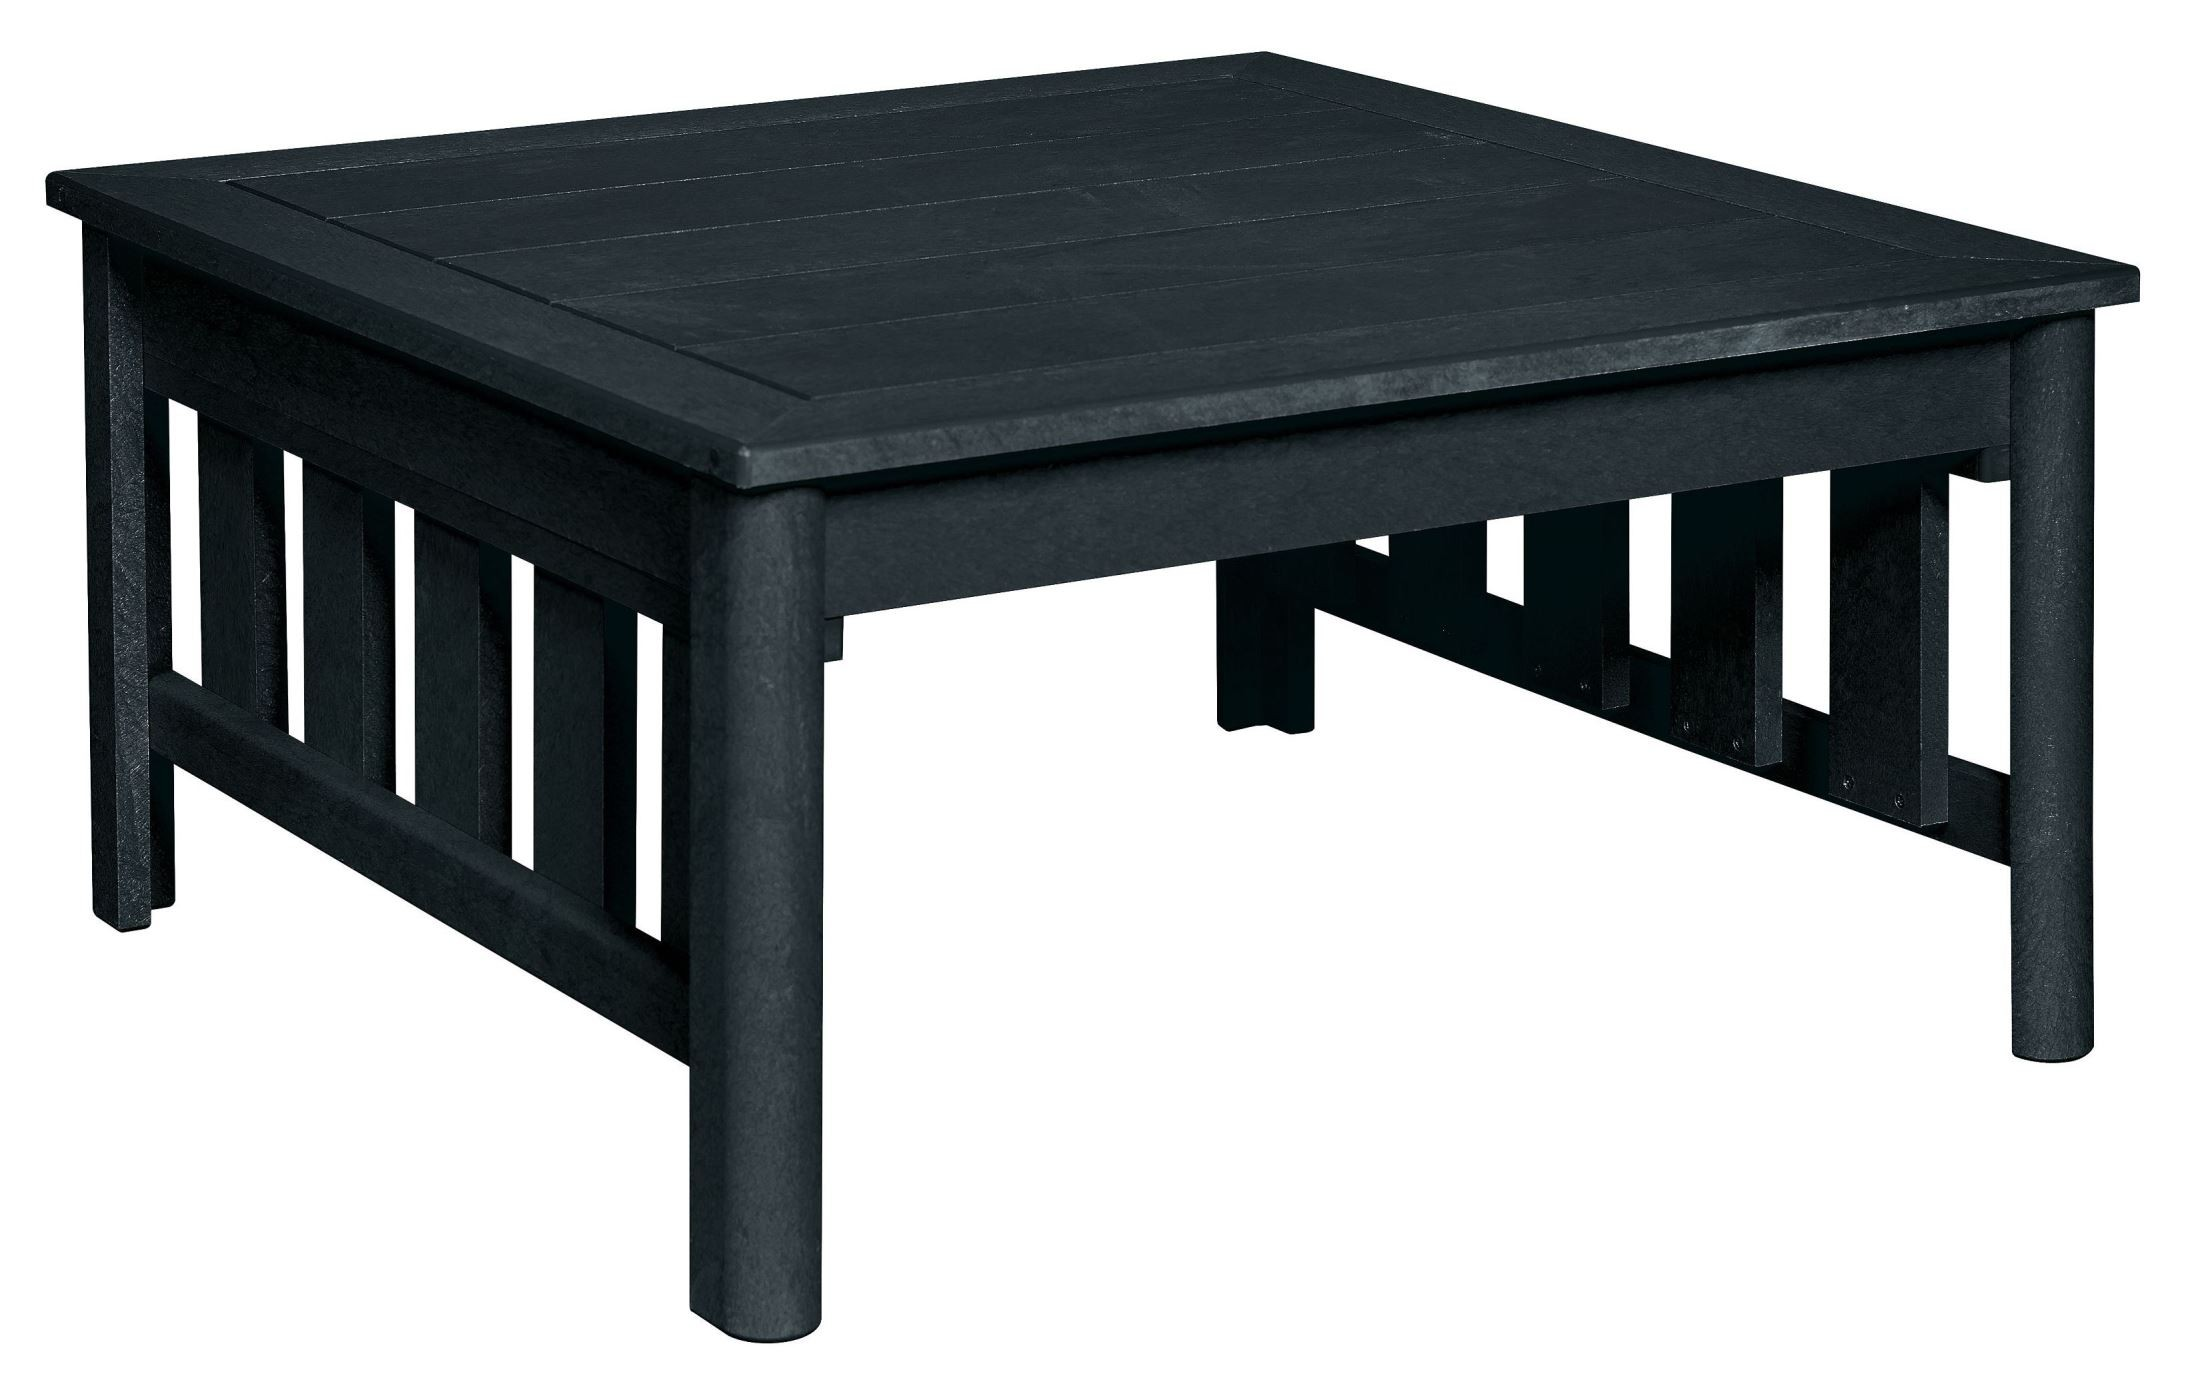 Stratford Black Occasional Table Set From Cr Plastic Dst147 14 Coleman Furniture